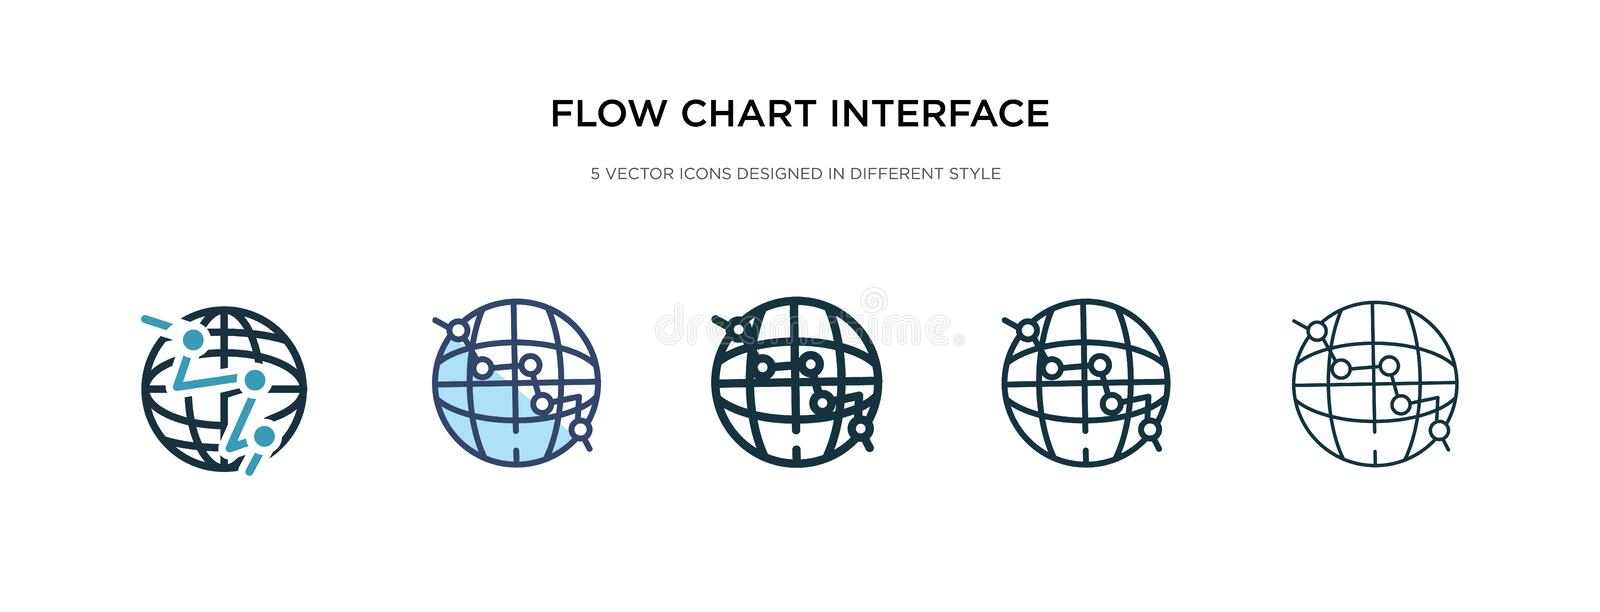 Flow chart interface icon in different style vector illustration. two colored and black flow chart interface vector icons designed. In filled, outline, line and stock illustration